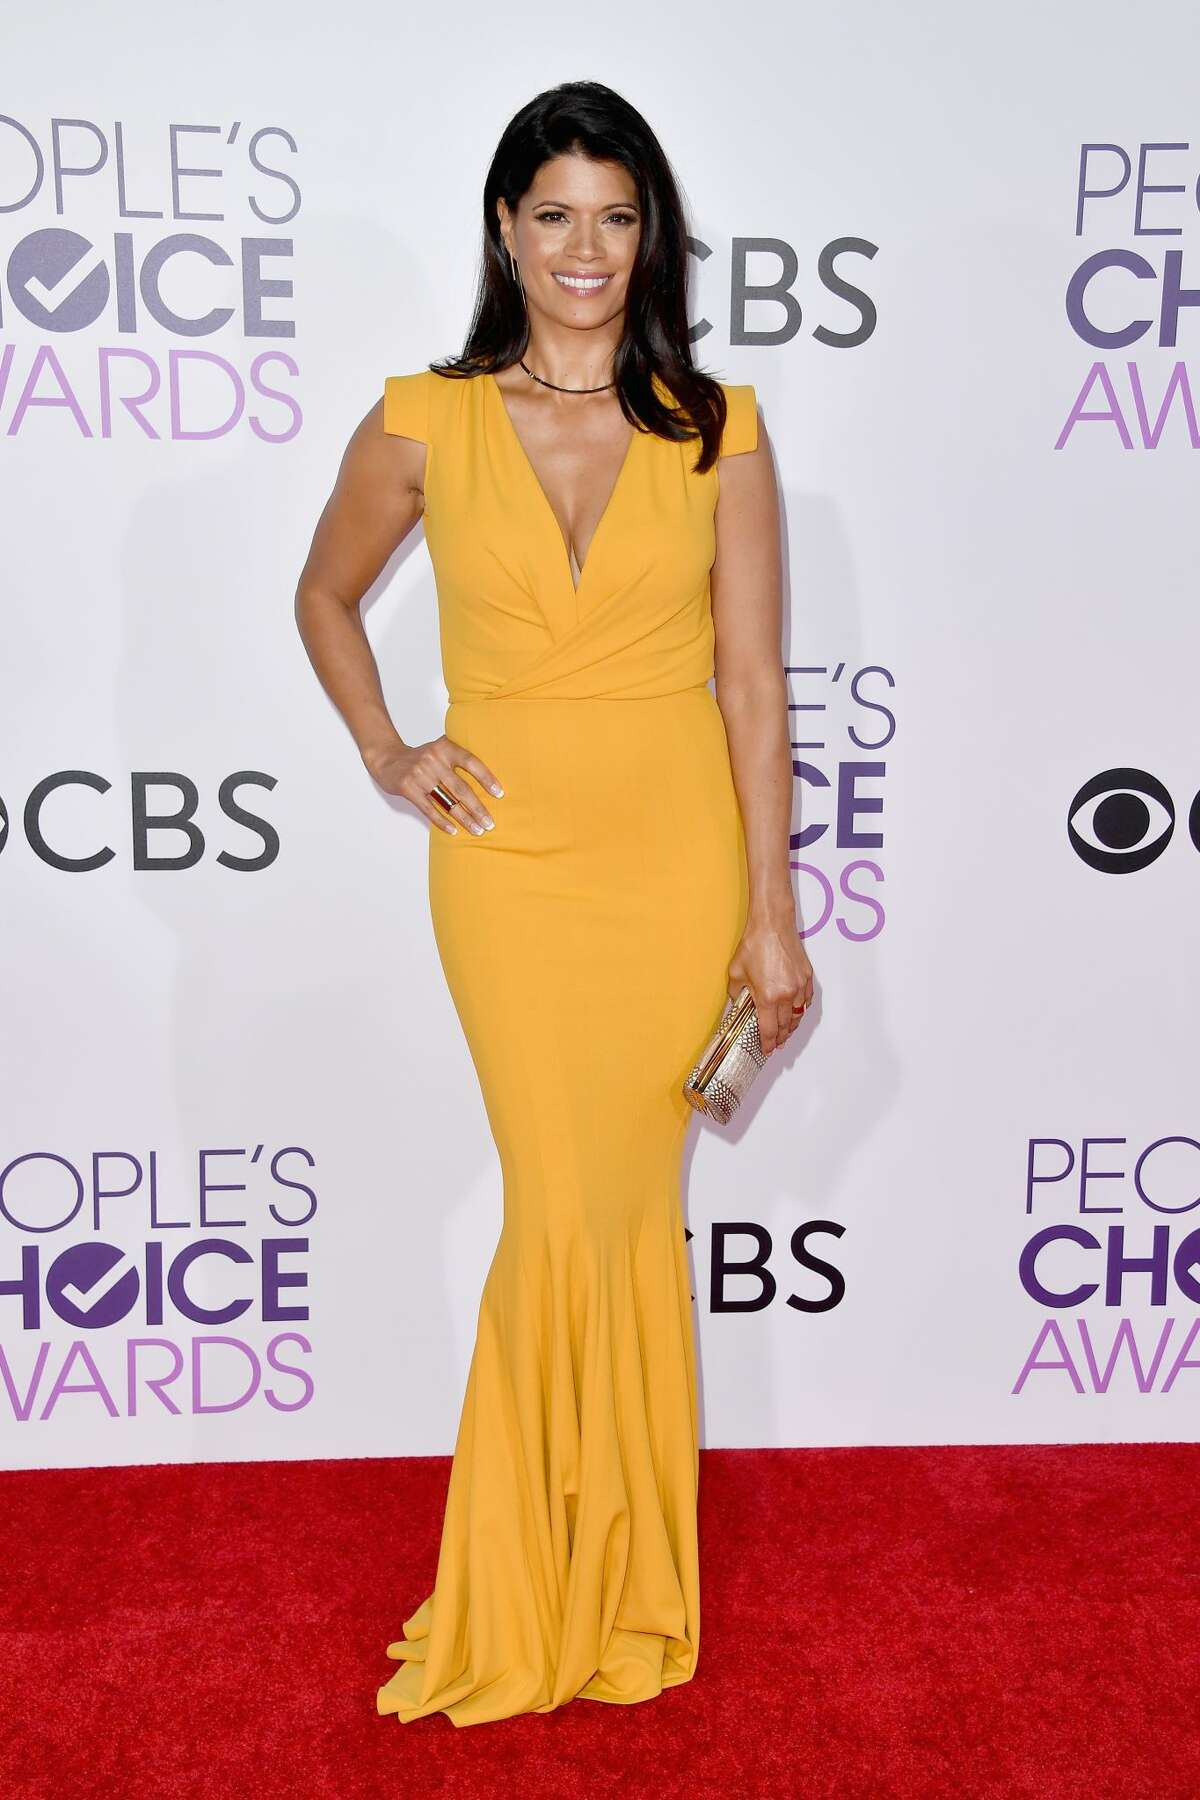 ANDREA Andrea Navedo is an actress best known for her soap opera roles in